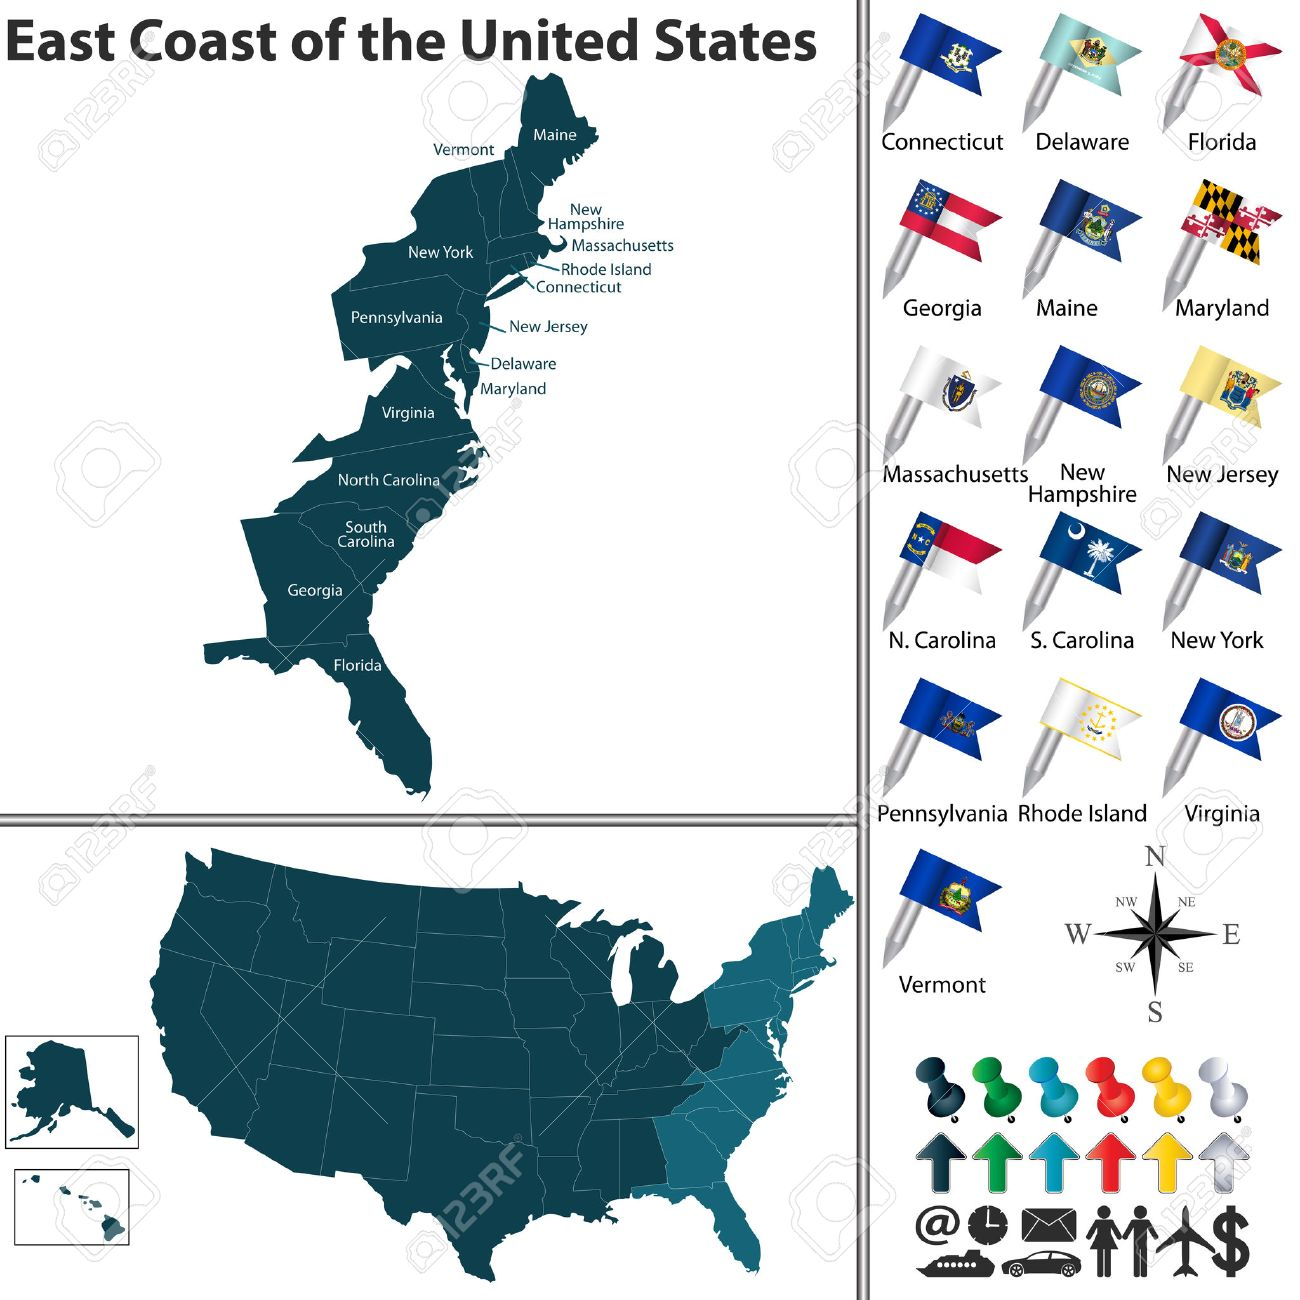 Rutgers Cartography Lab EZPass New York Participating Toll - Us zip code new jersey